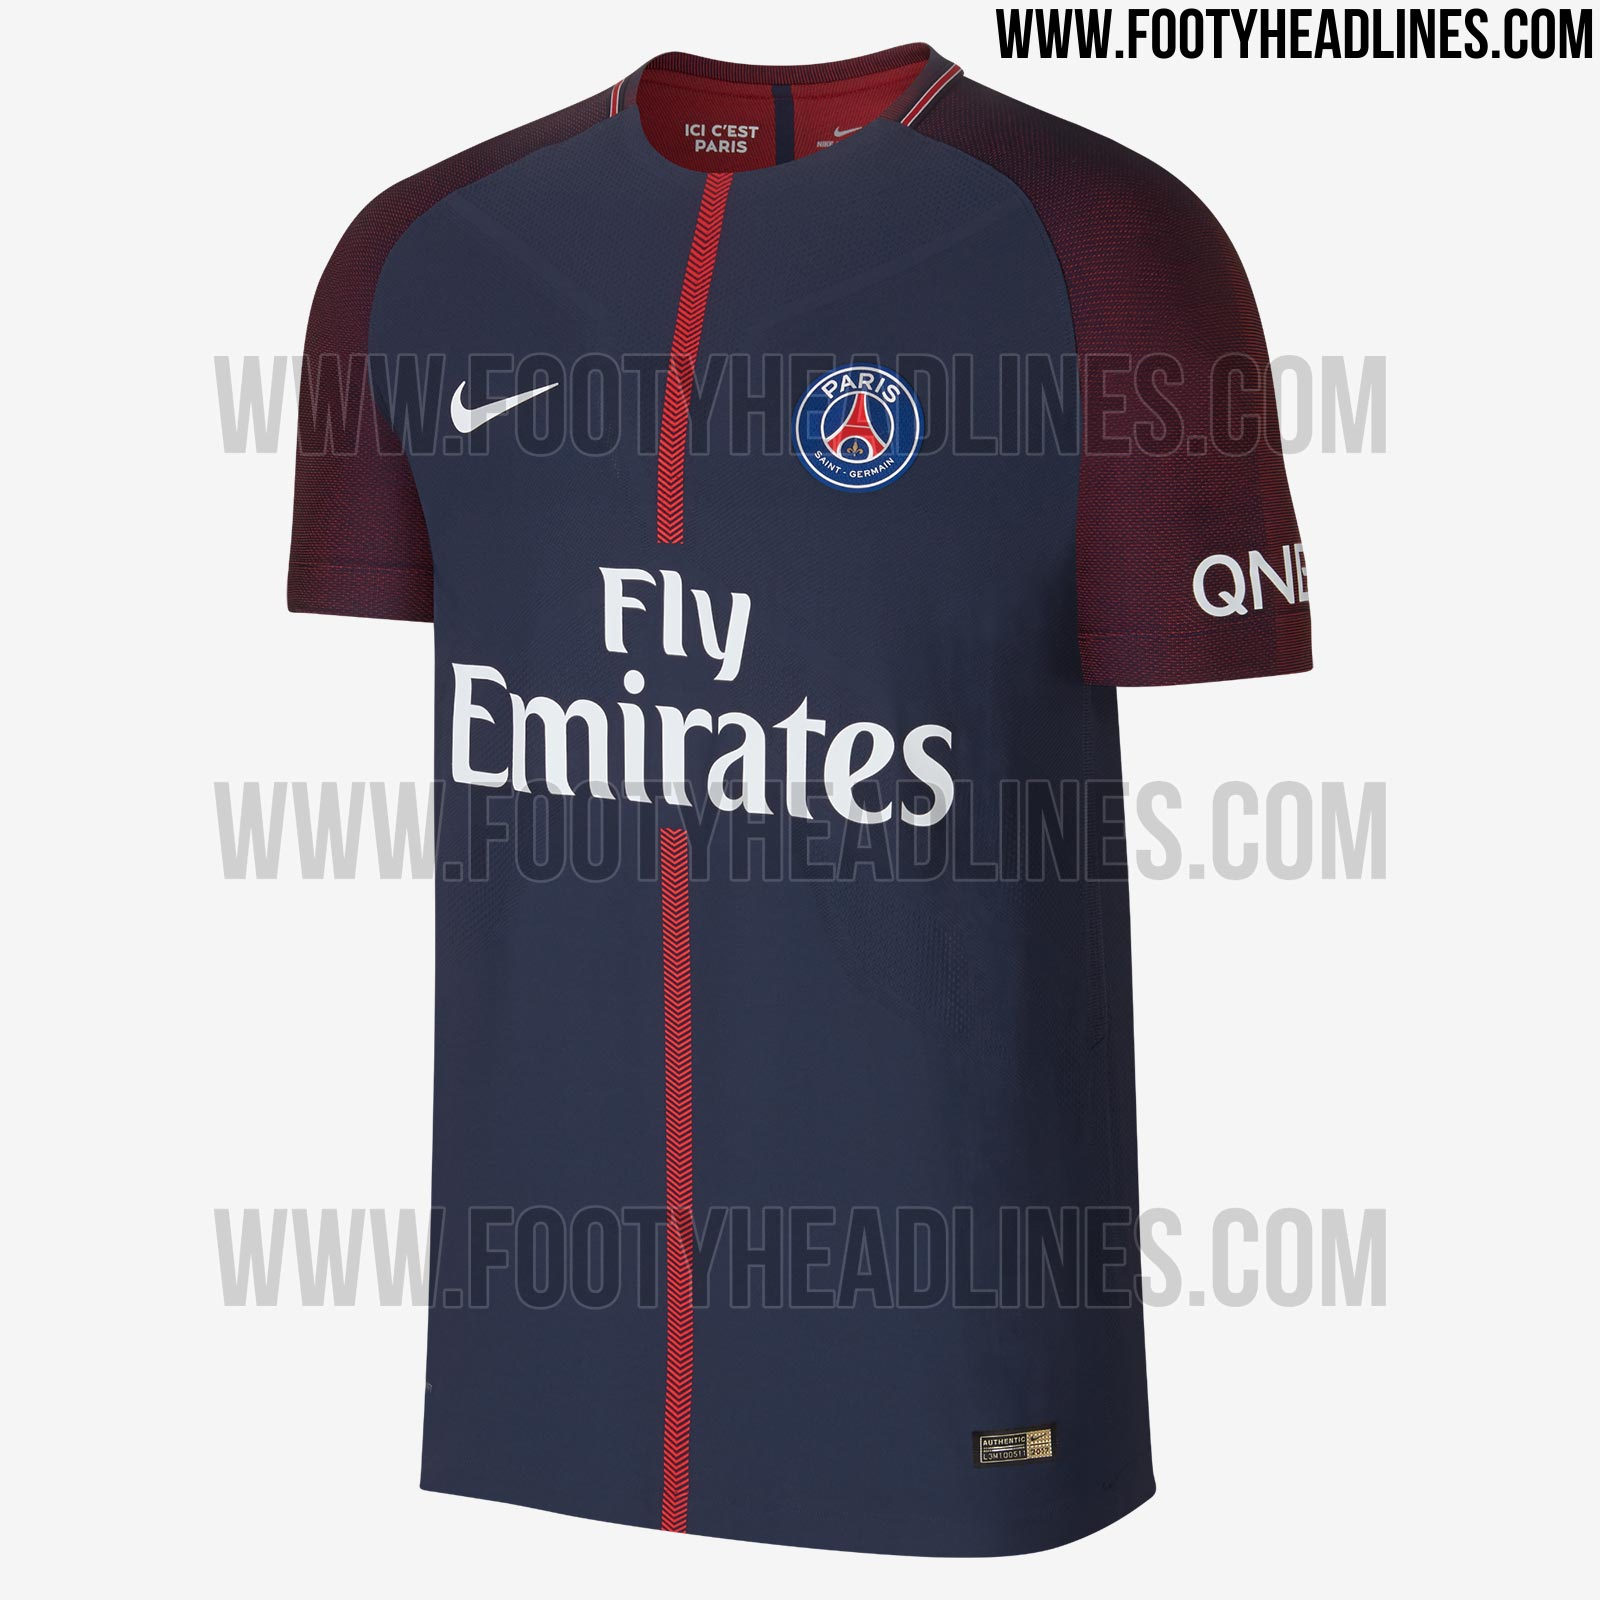 psg 17 18 home kit revealed footy headlines. Black Bedroom Furniture Sets. Home Design Ideas